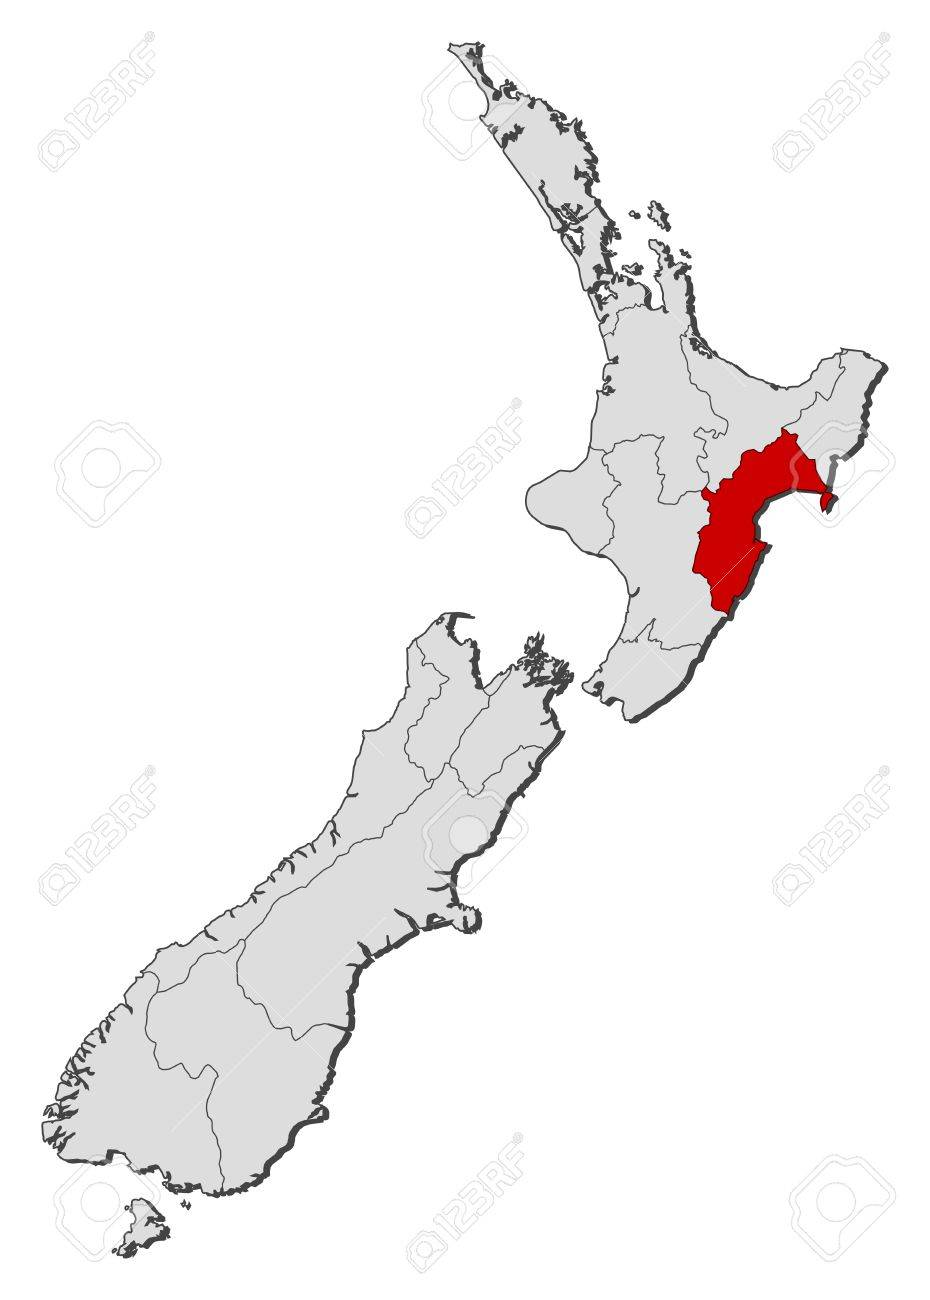 Political Map Of New Zealand.Political Map Of New Zealand With The Several Regions Where Taranaki